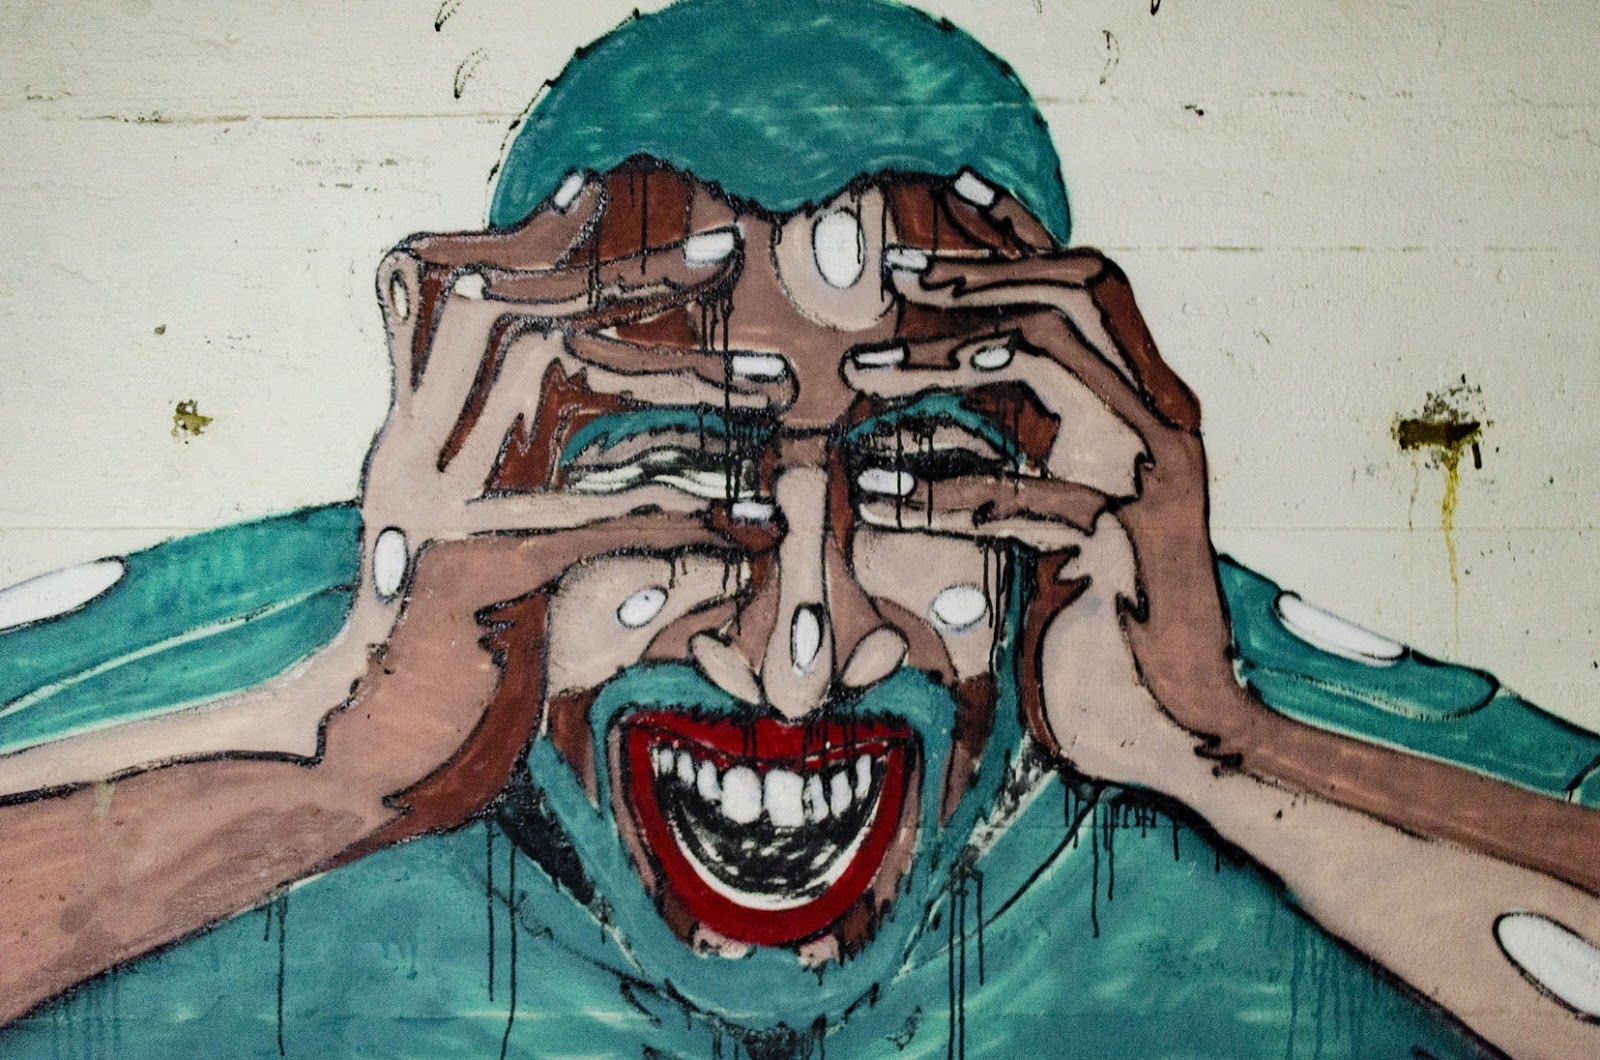 Natural Remedies For Anxiety: graffiti of man struggling